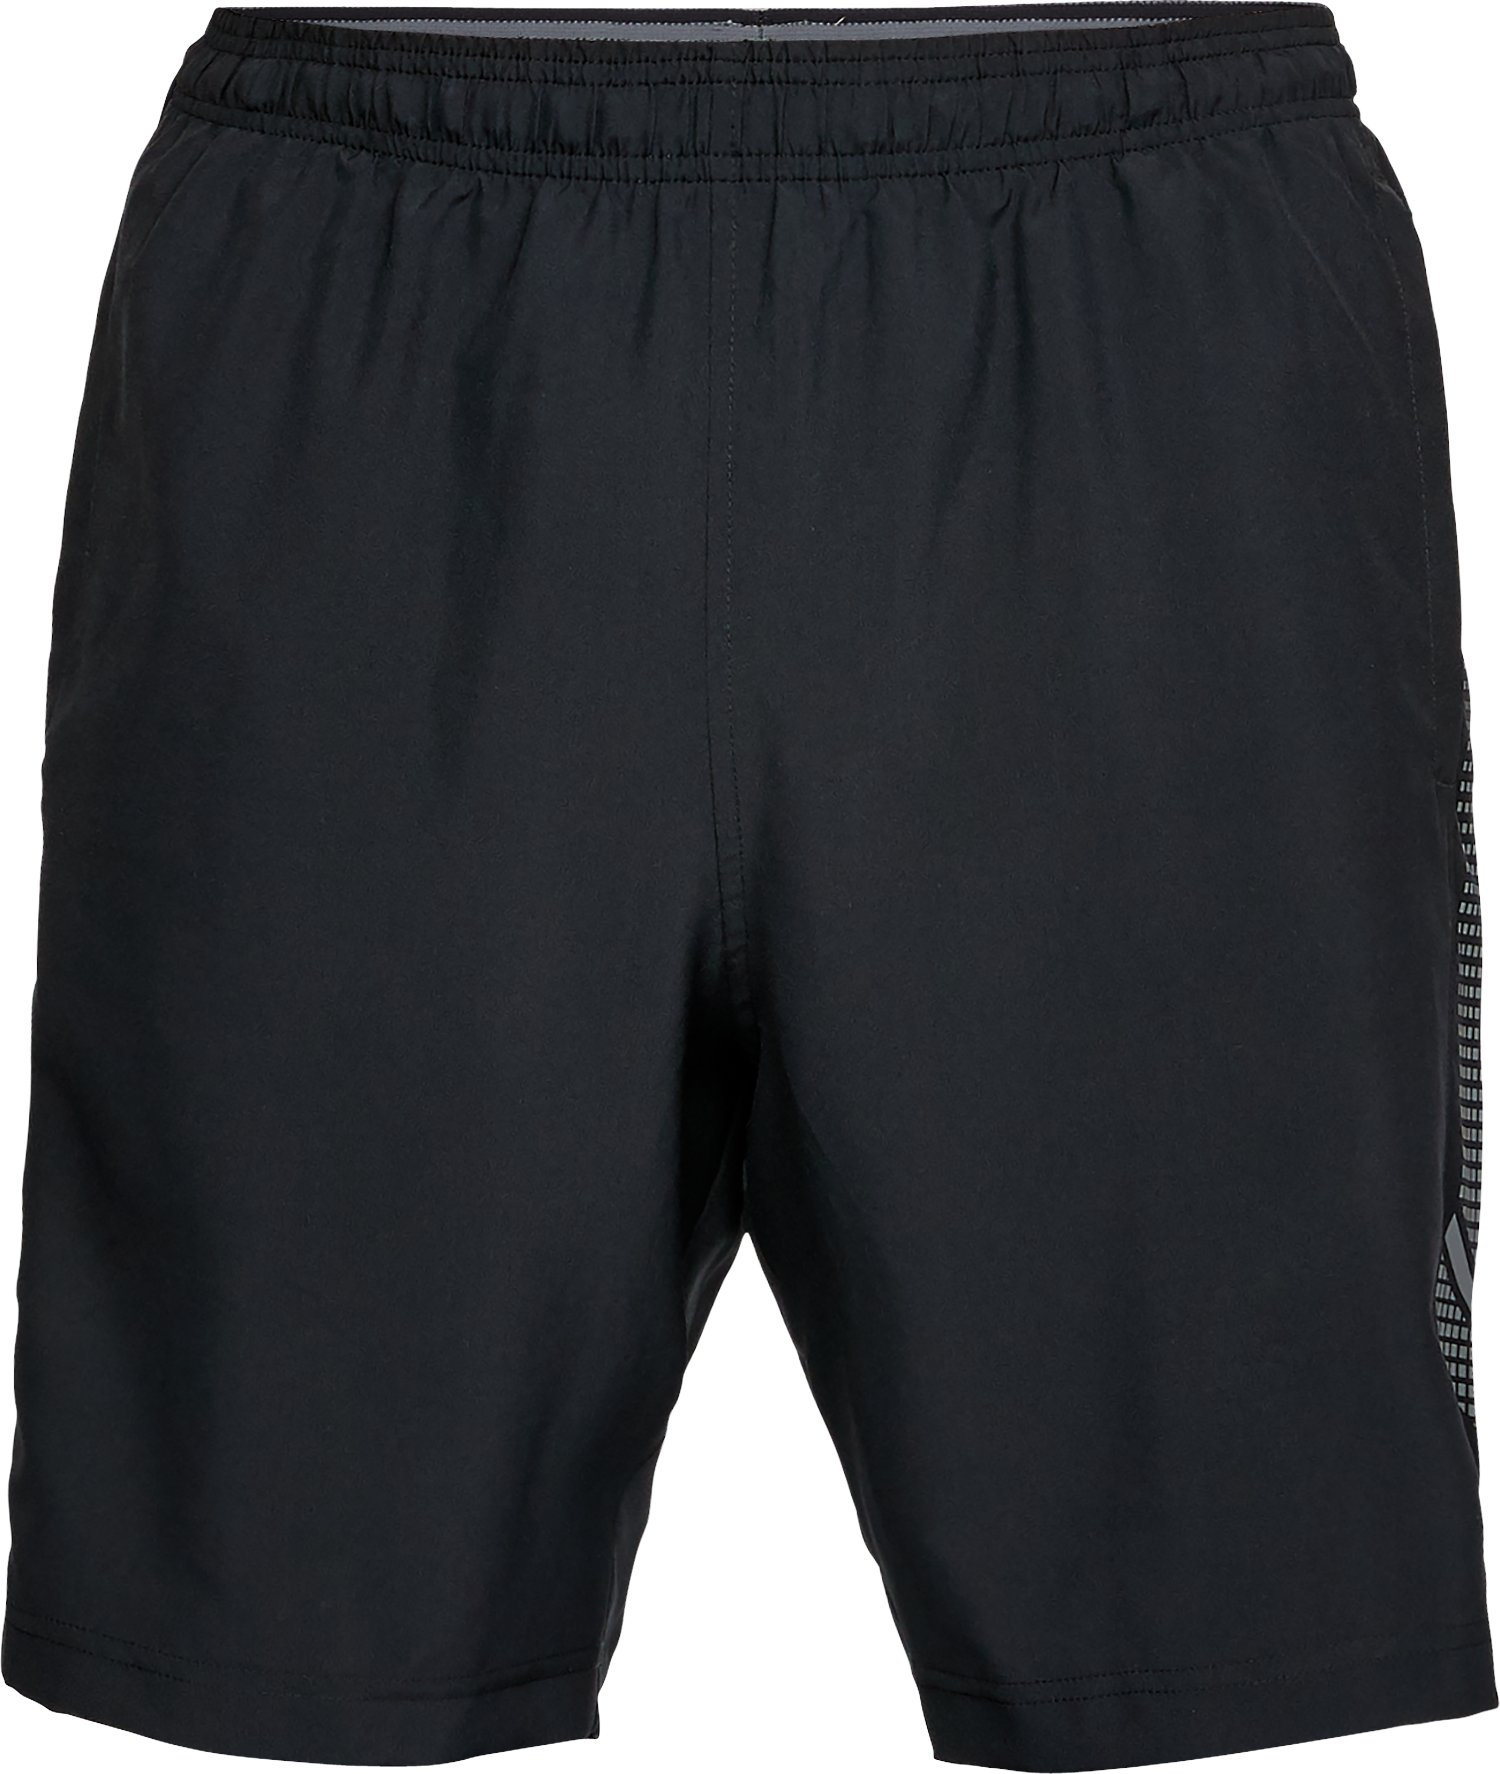 Men's UA Woven Graphic Shorts, Black , undefined